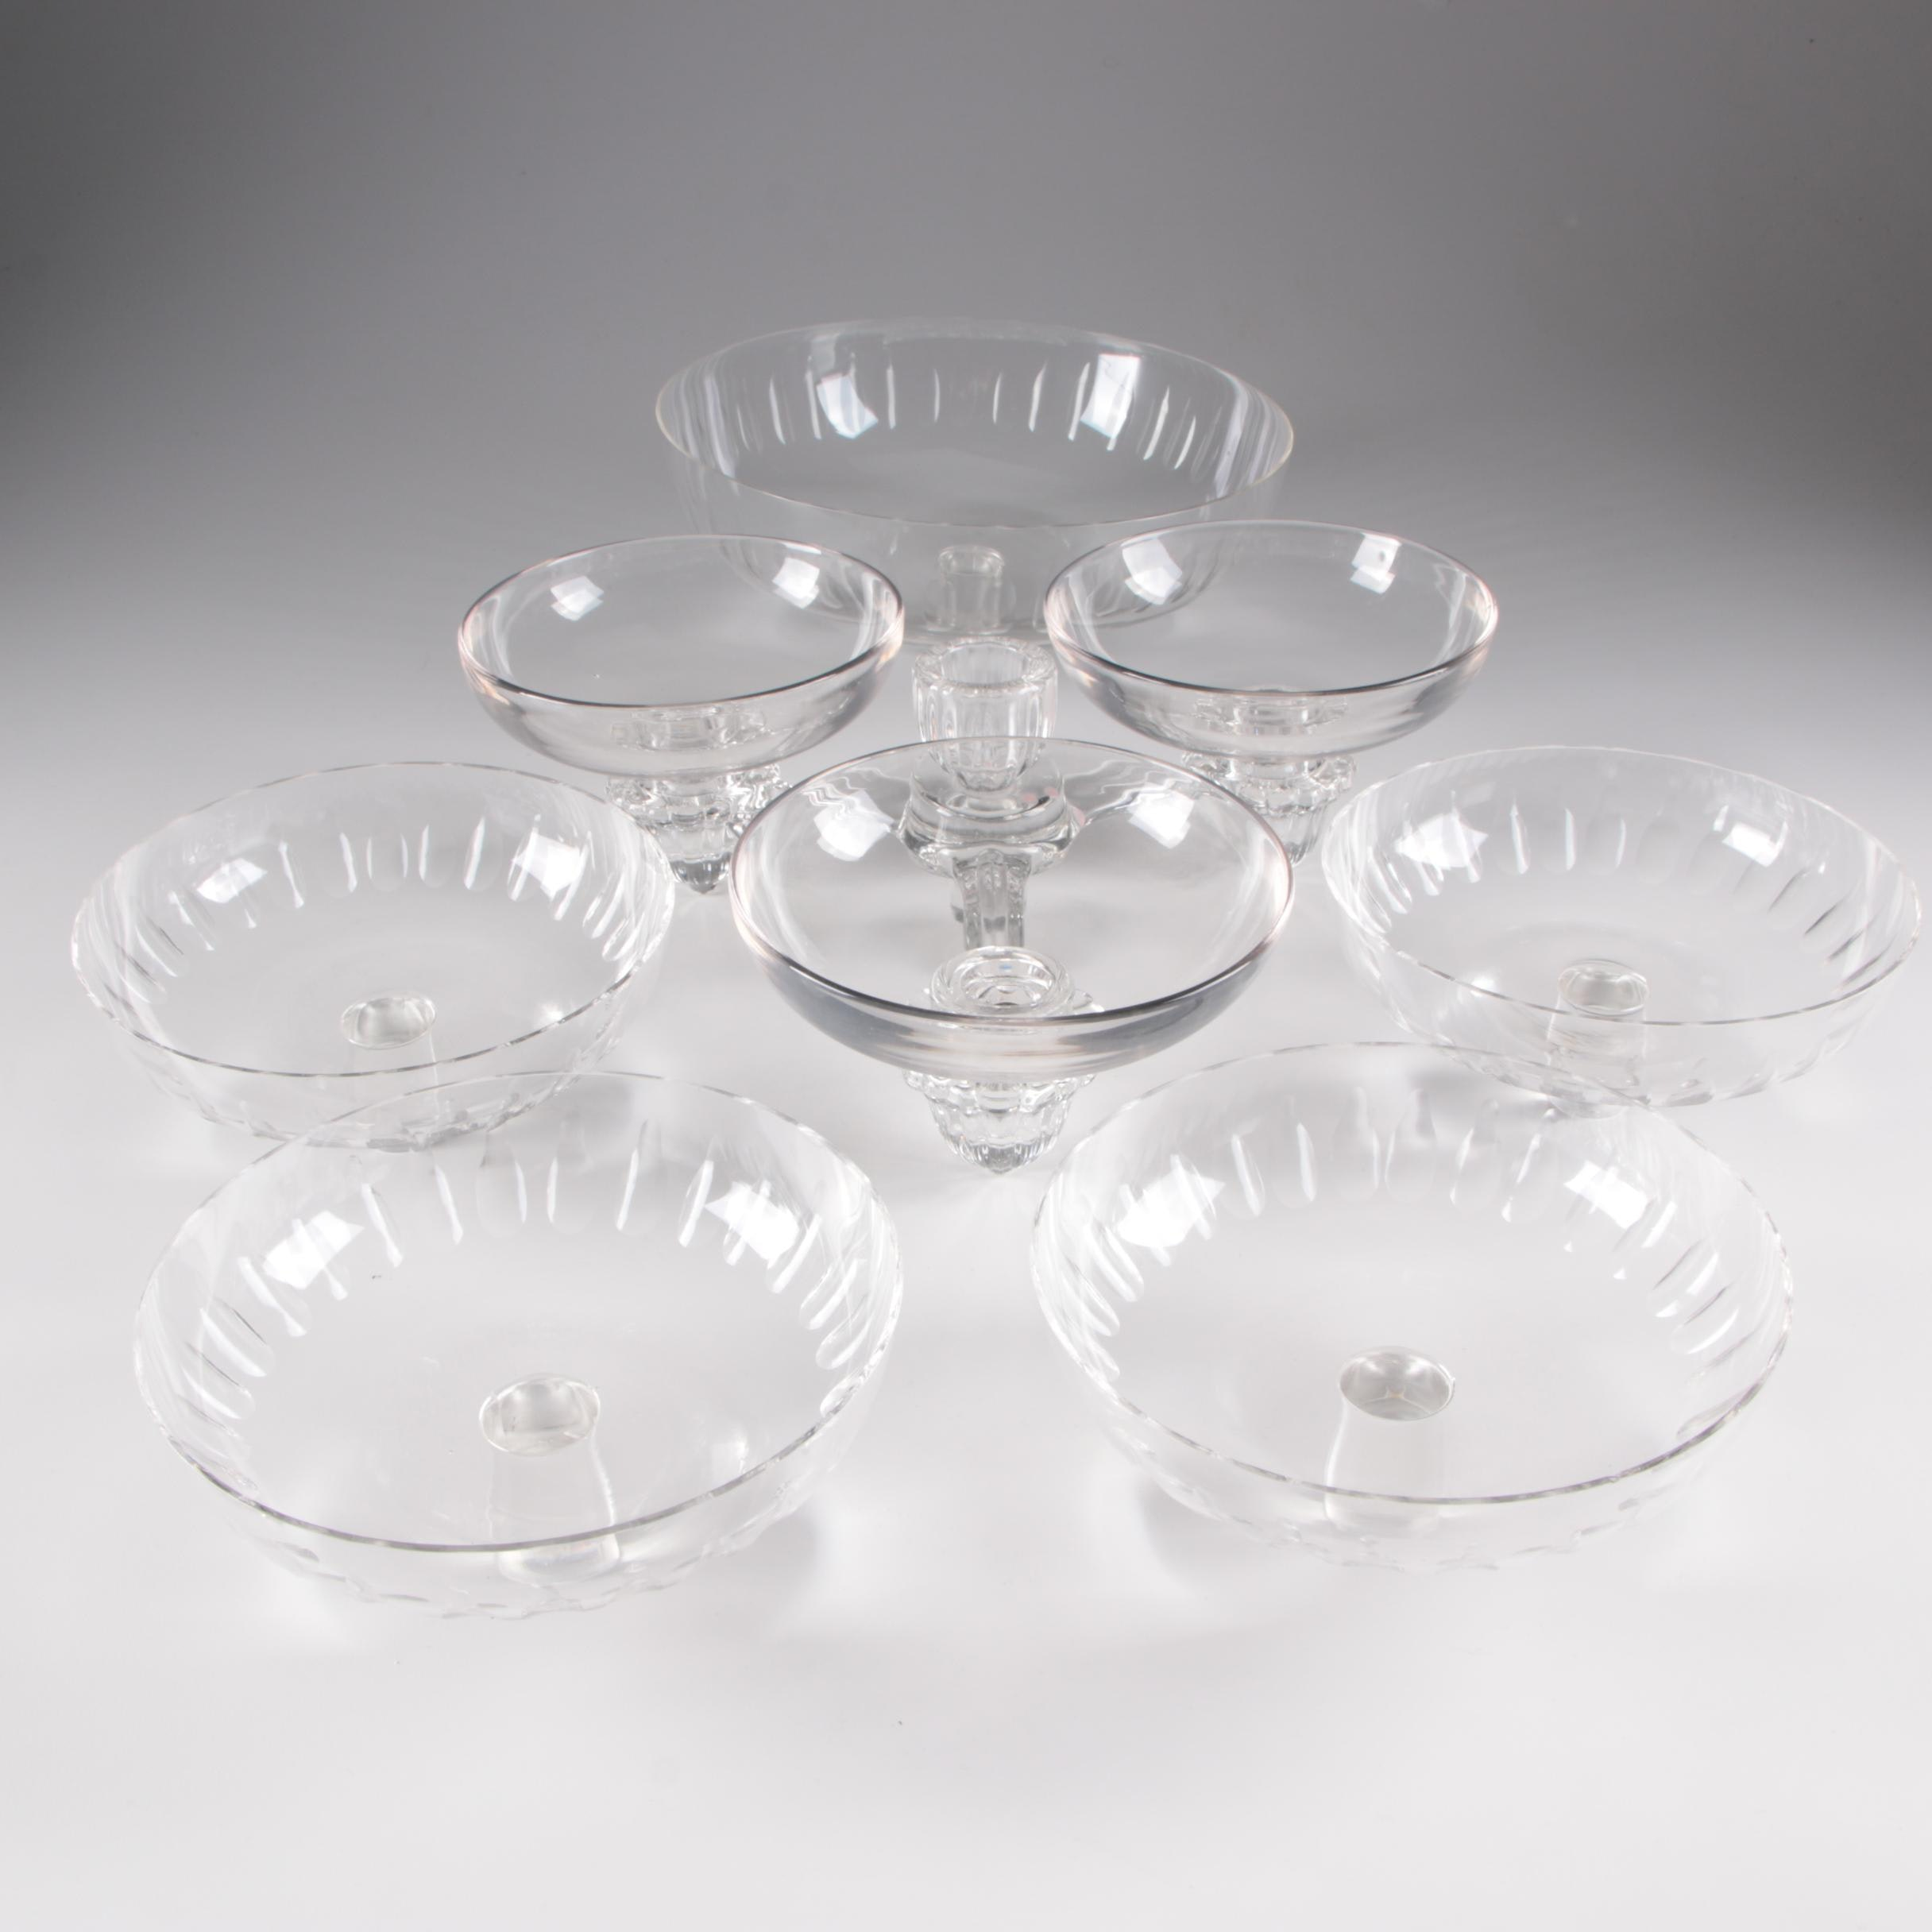 Art Glass Epergne with Additional Bowls